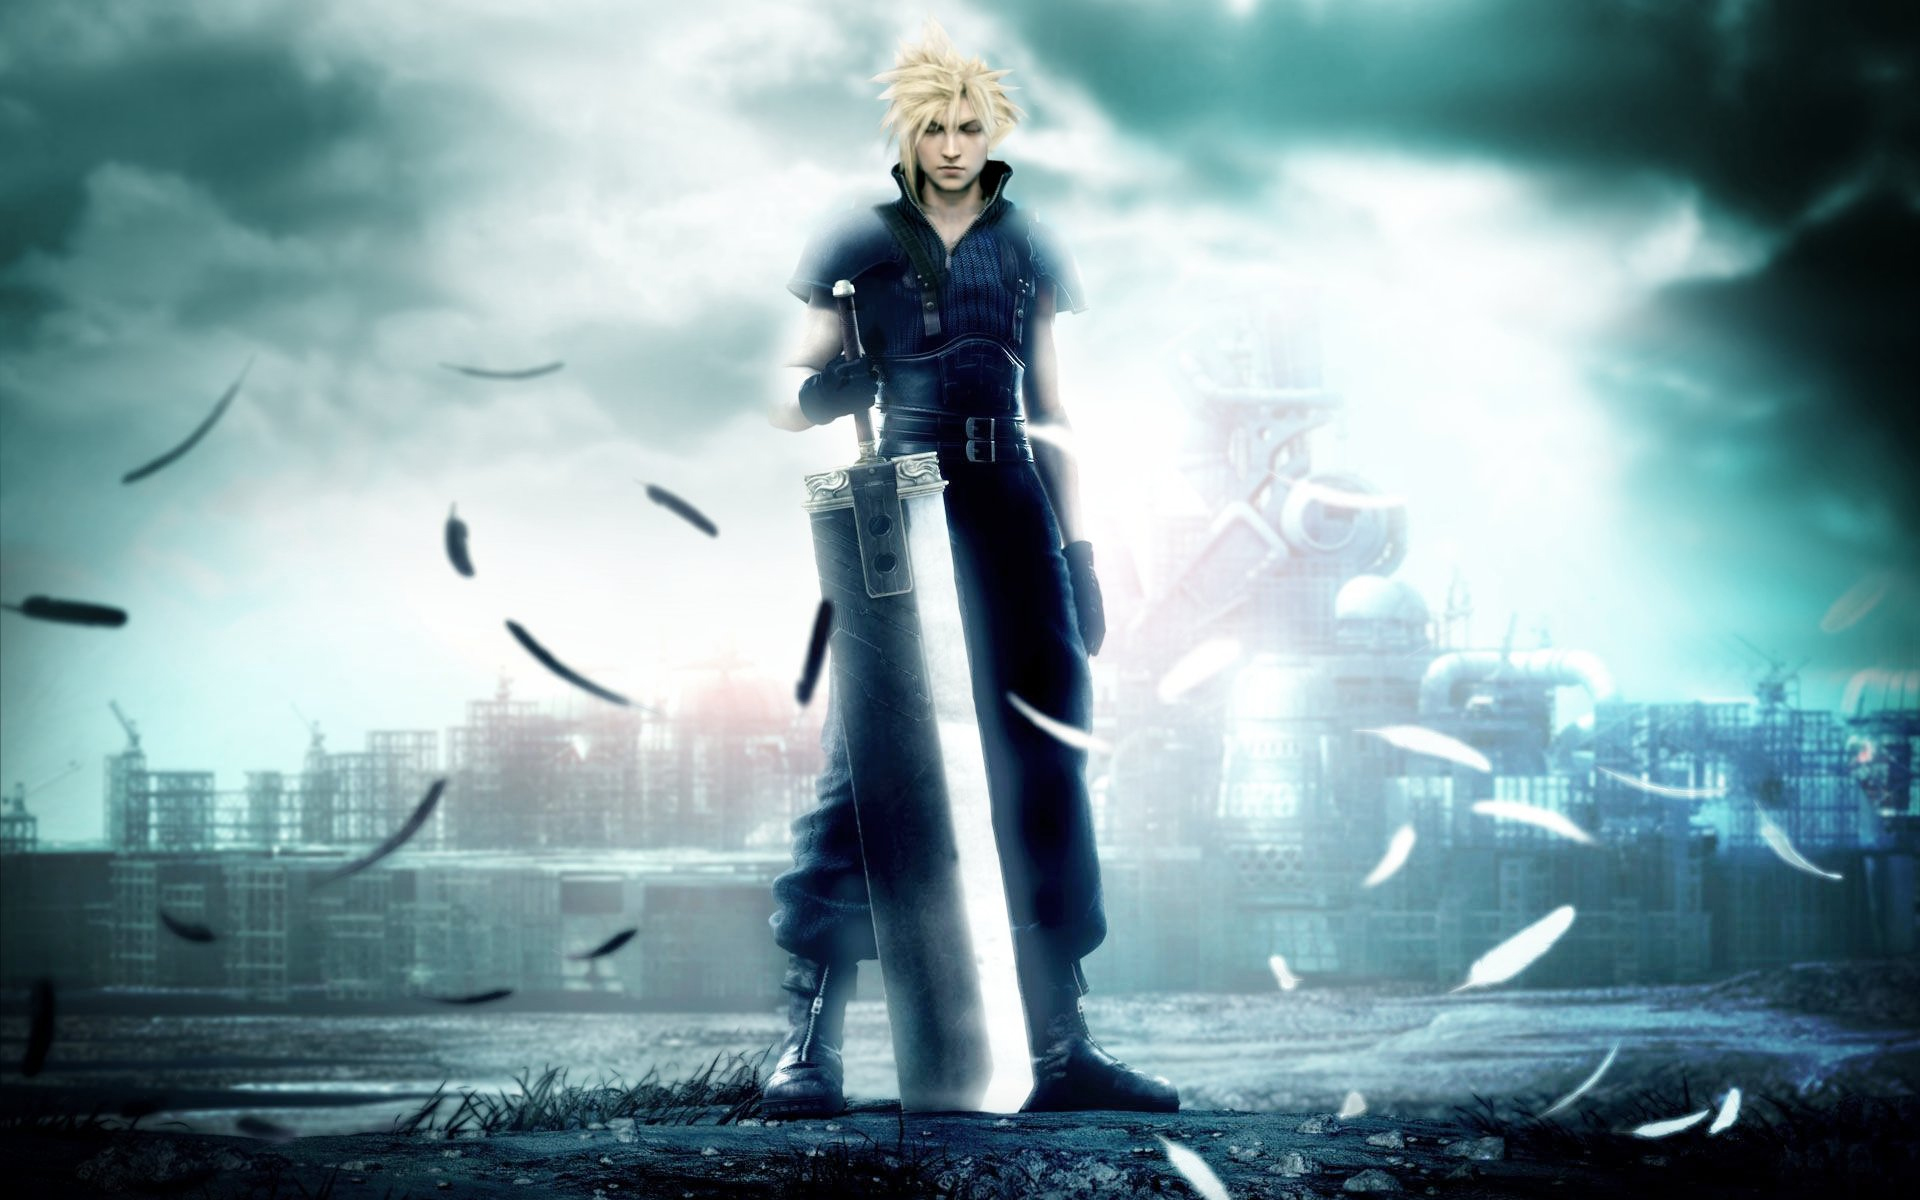 Pics Photos   Final Fantasy 7 Hd Wallpaper Desktop For Desktop 1920x1200